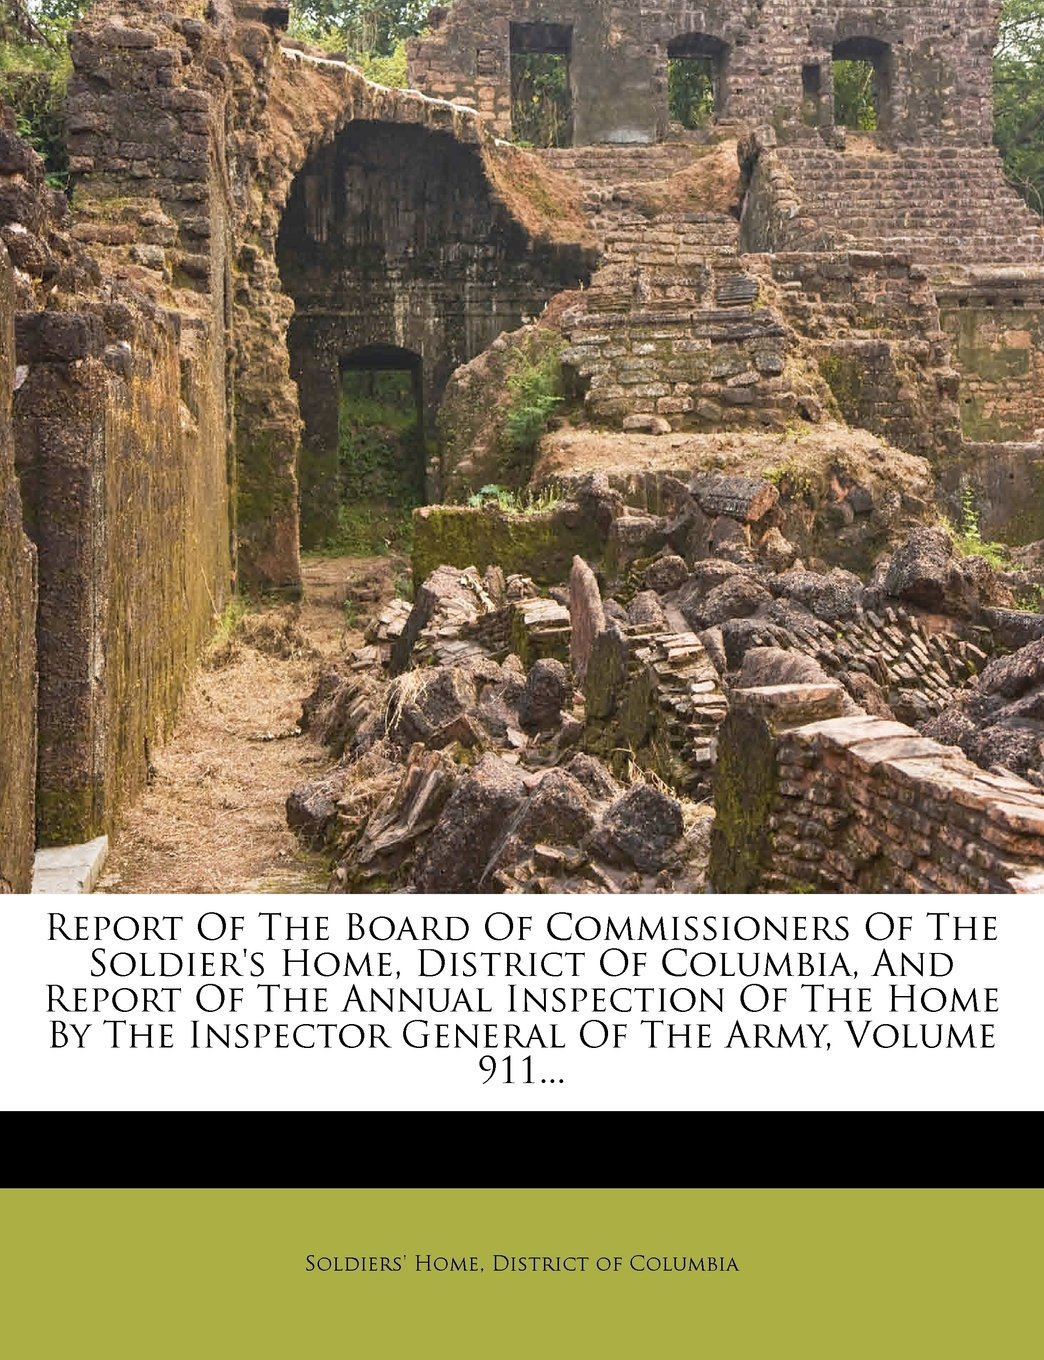 Read Online Report Of The Board Of Commissioners Of The Soldier's Home, District Of Columbia, And Report Of The Annual Inspection Of The Home By The Inspector General Of The Army, Volume 911... PDF